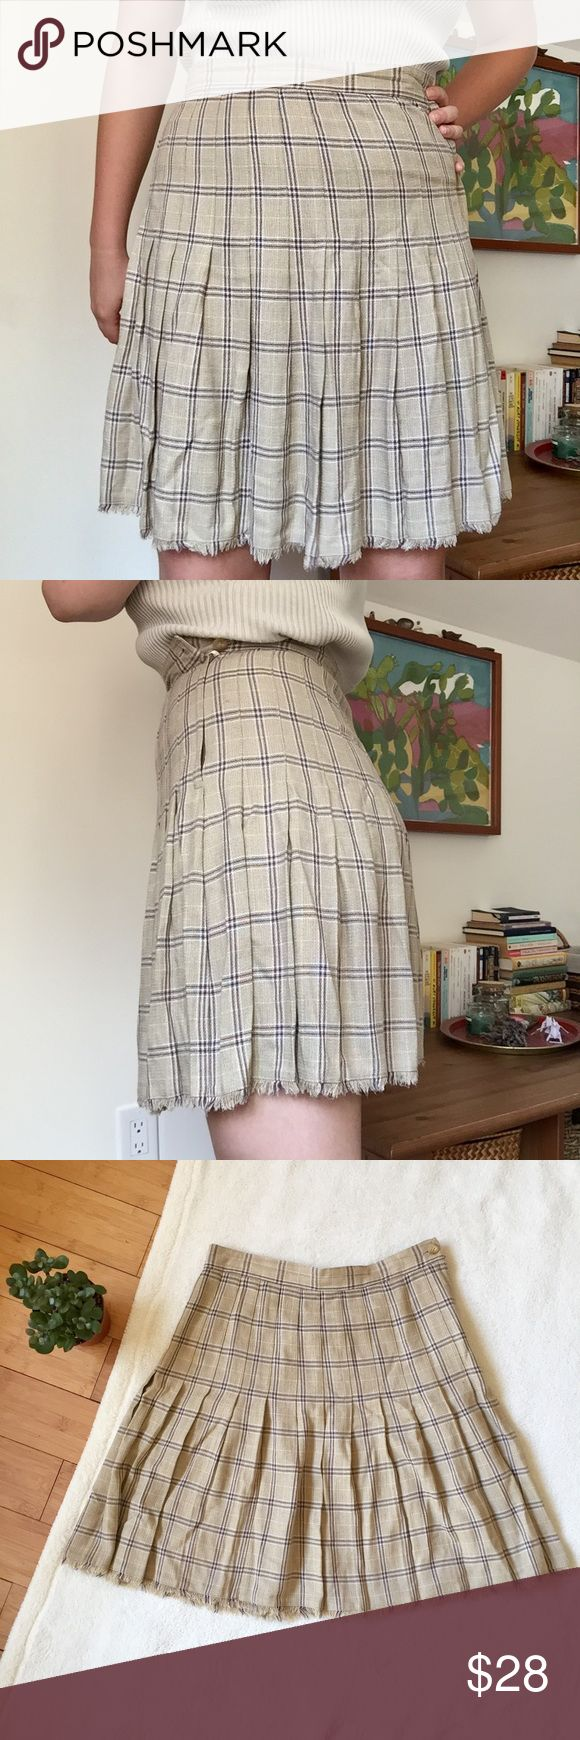 "✨Sale✨ Vintage Plaid Schoolgirl Tennis Skirt Late 80s/early 90s beige checkered pleated skirt by Liz Claiborne. Union-made in the USA of 100% rayon. The frayed hem is my fave! Gives so much texture and interest to this neutral piece, but the hem is actually finished so the skirt won't unravel. Beautiful quality, perfect condition. Tagged a size 8 but runs a bit small, best fit for a 27-28"" waist. Measures 13.75"" across waist, 19.5"" long. Vintage Skirts Mini"